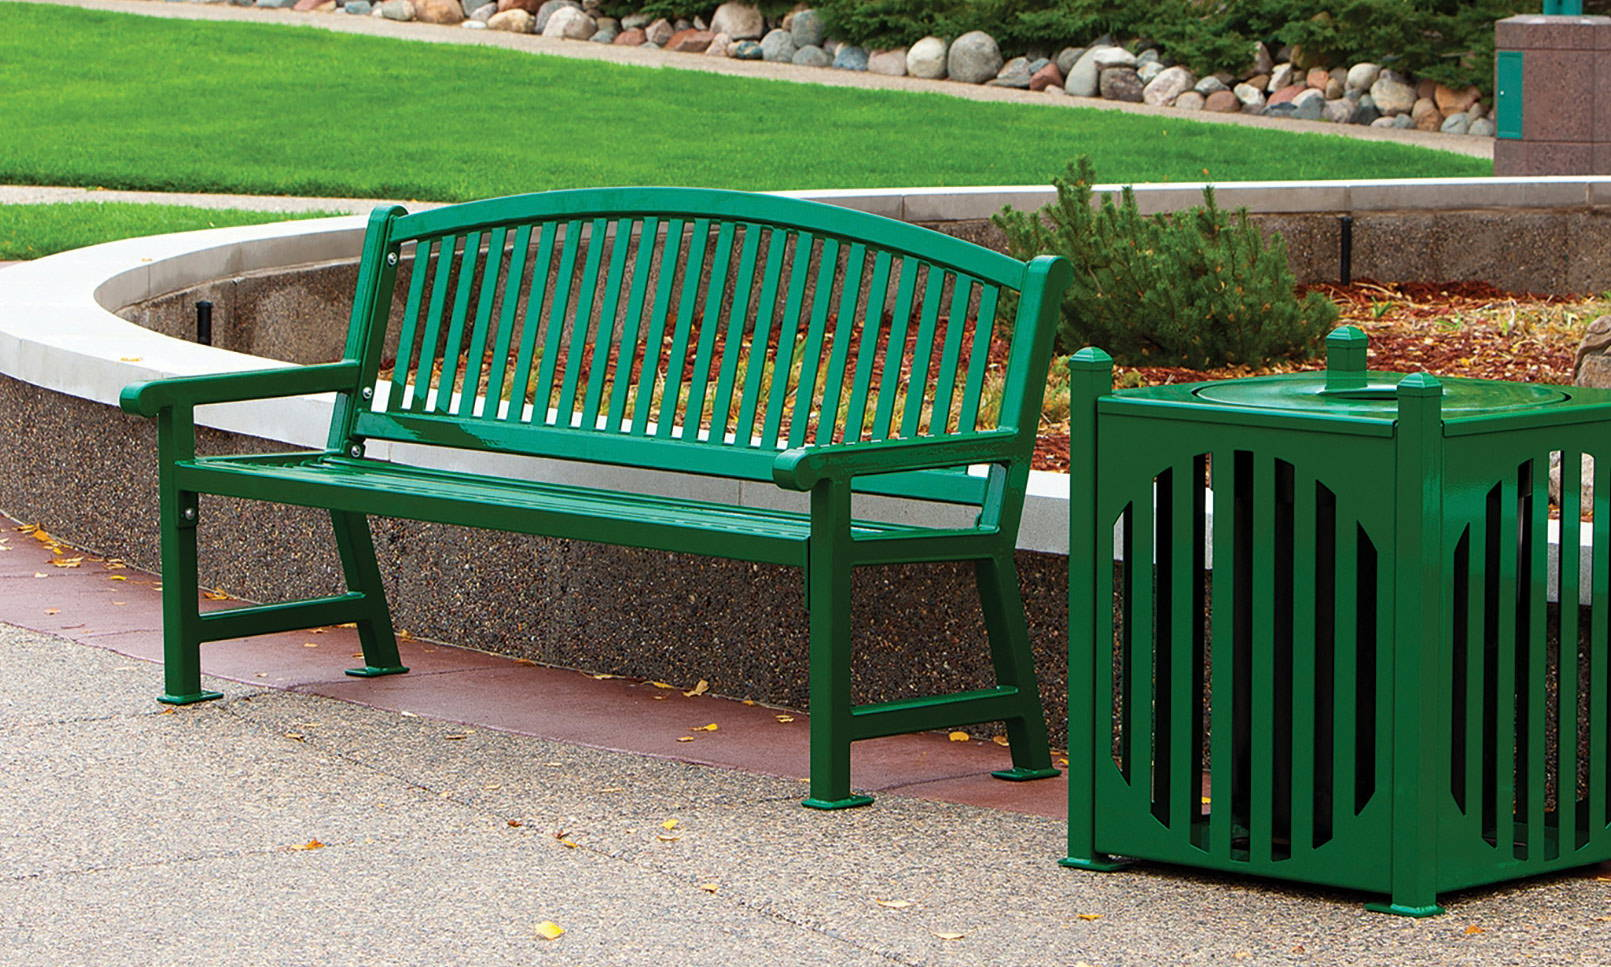 Park Amenities | Park Benches, Trash Receptacles, Picnic Tables & More